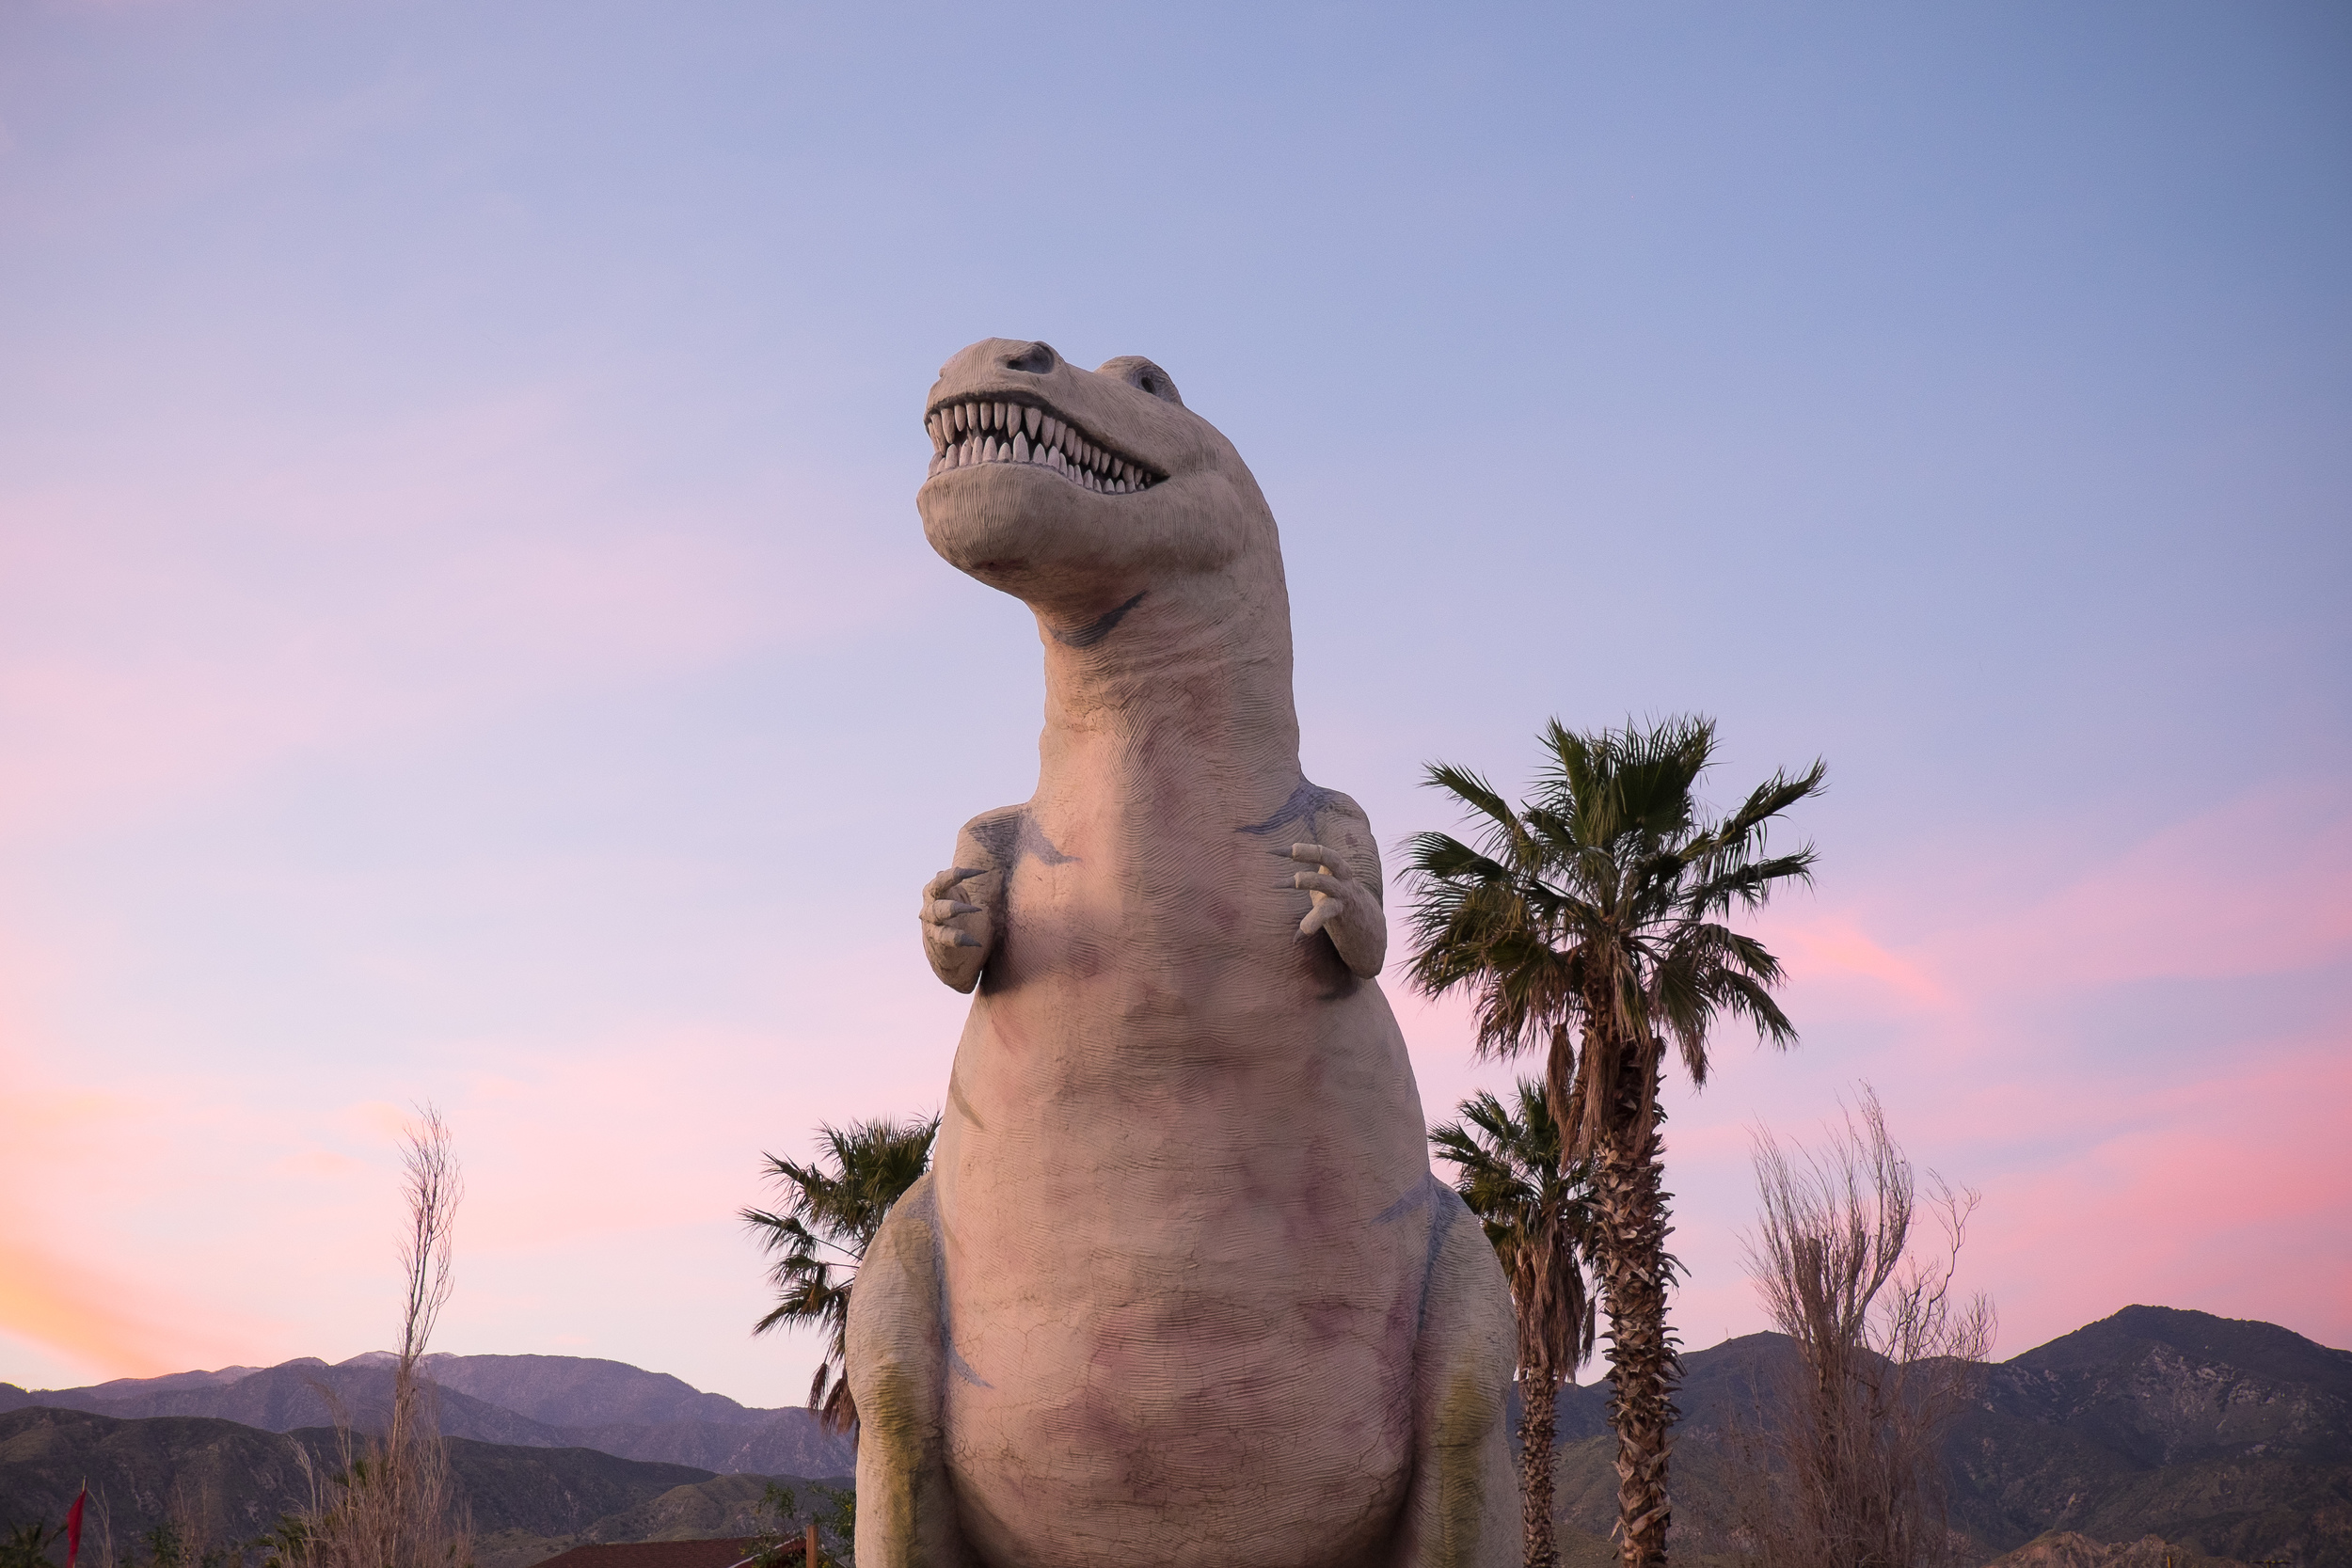 And one stop on the way home to see the Cabazon Dinosaurs. This guy's name is Mr. Rex, and he weighs 100 tons.